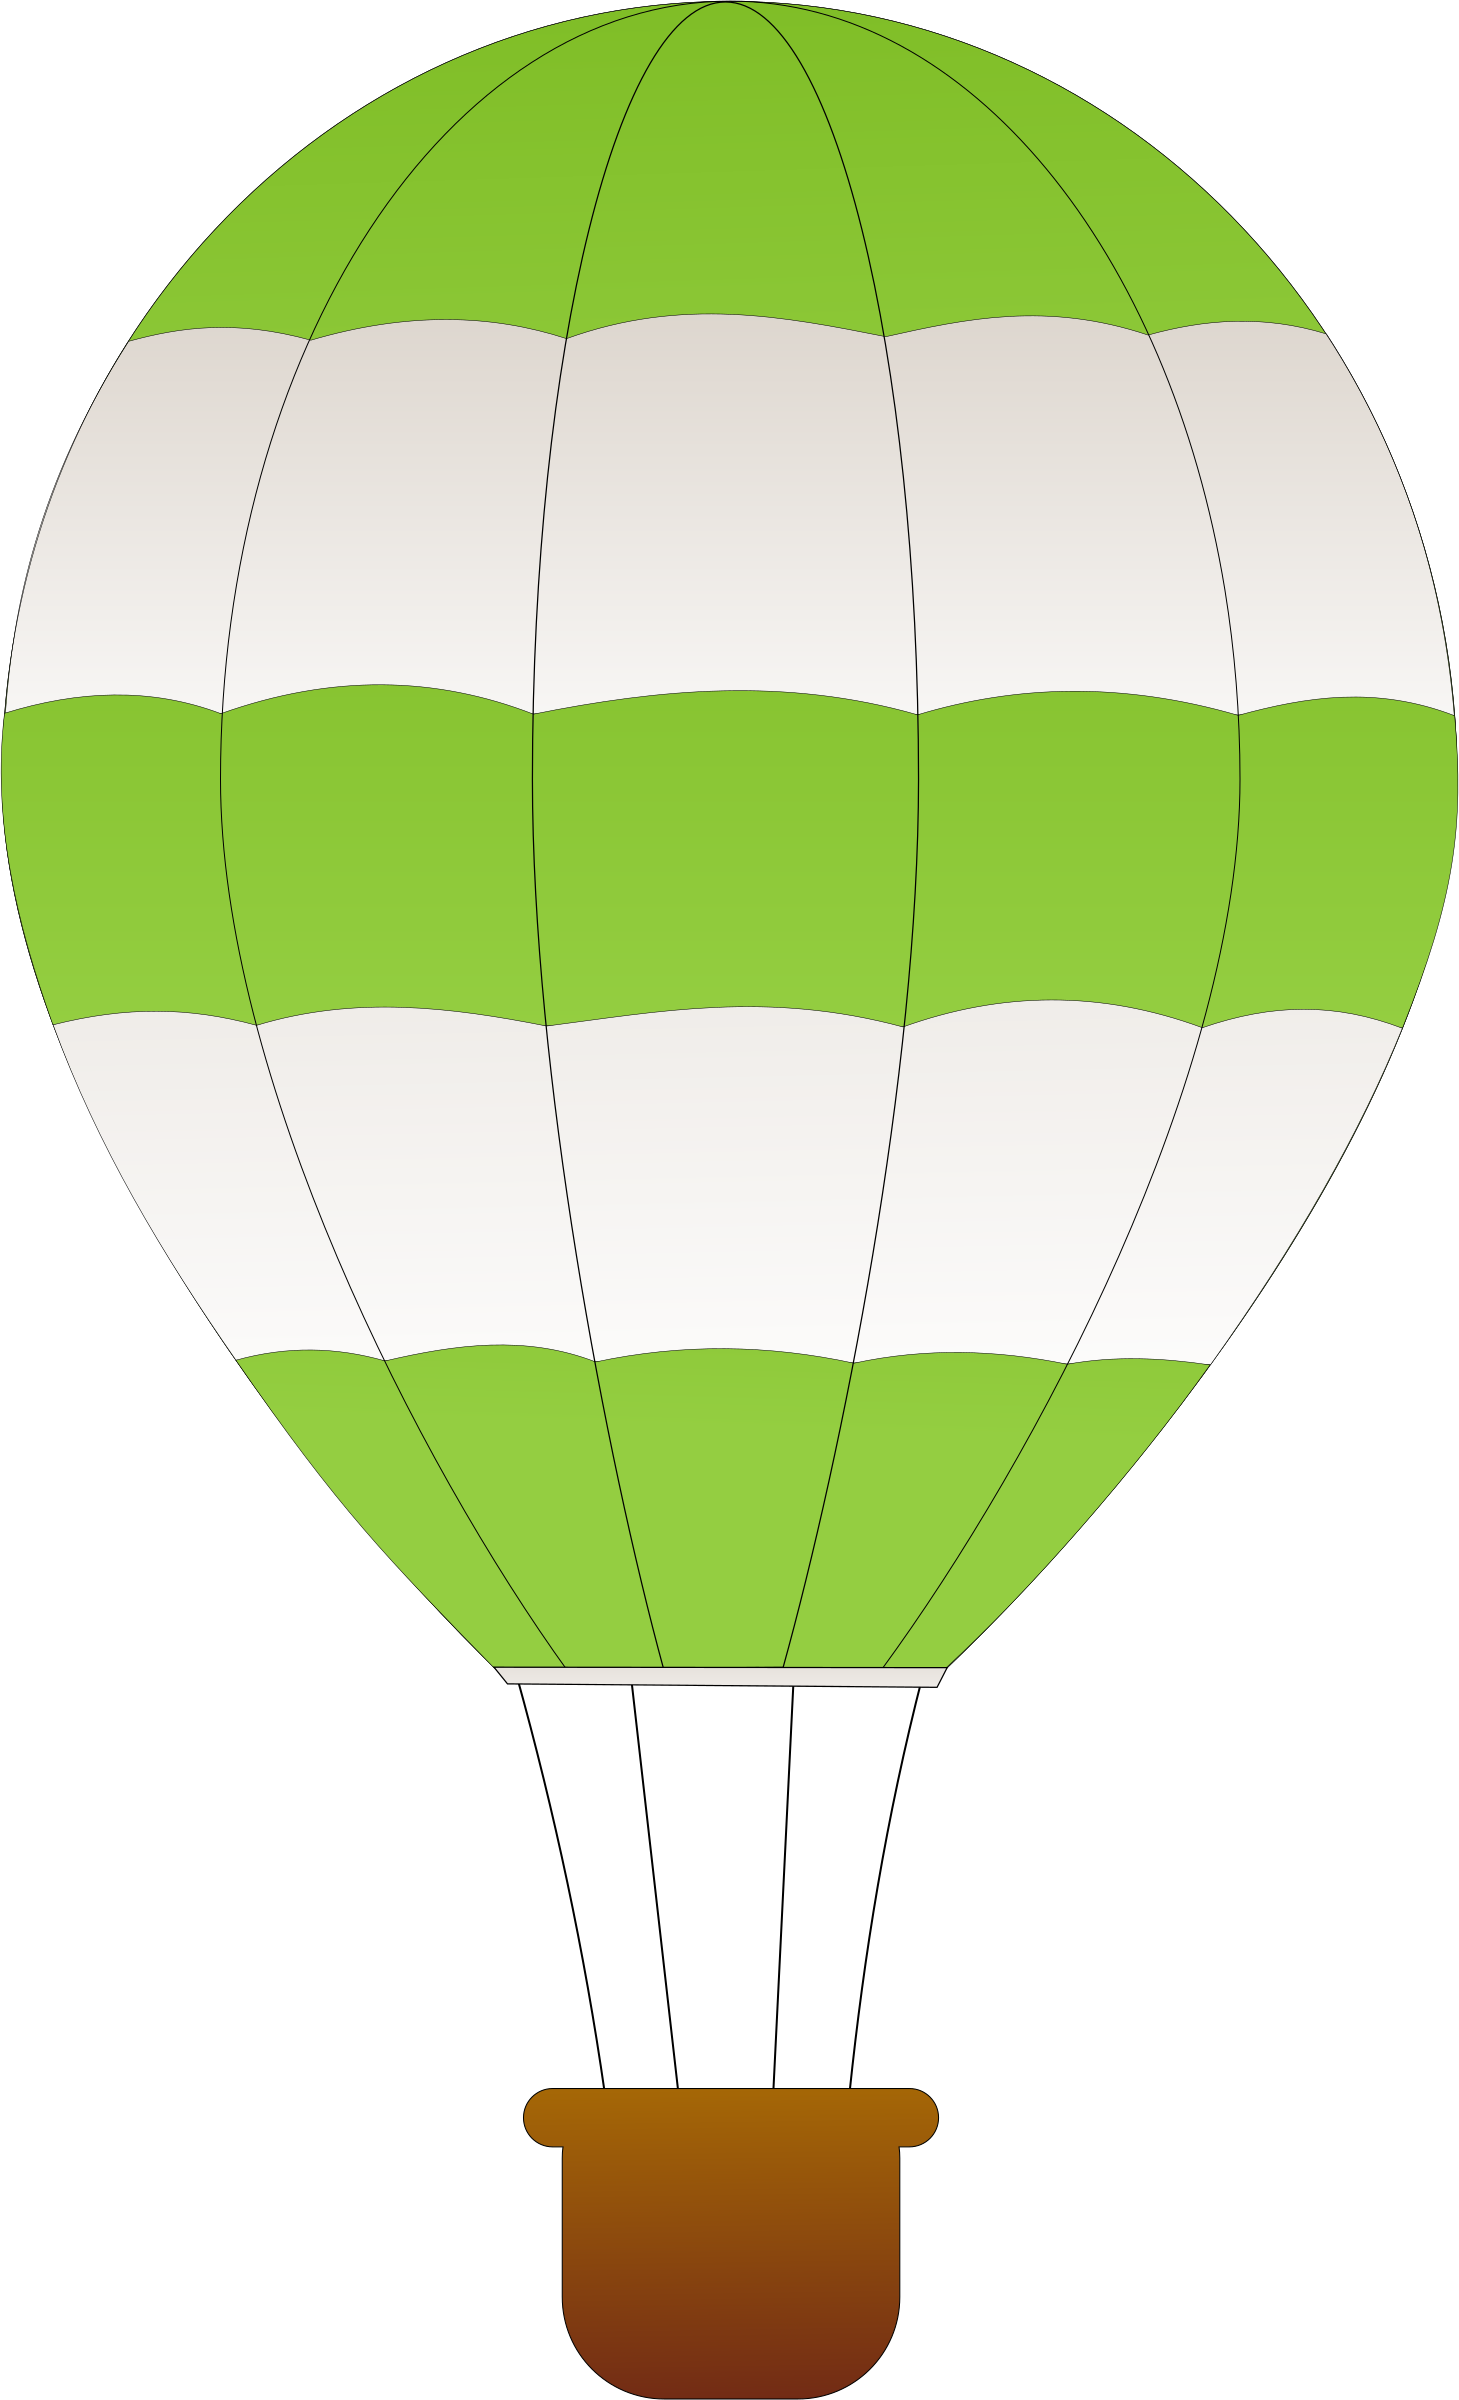 Green clipart hot air balloon. Horizontal striped balloons big